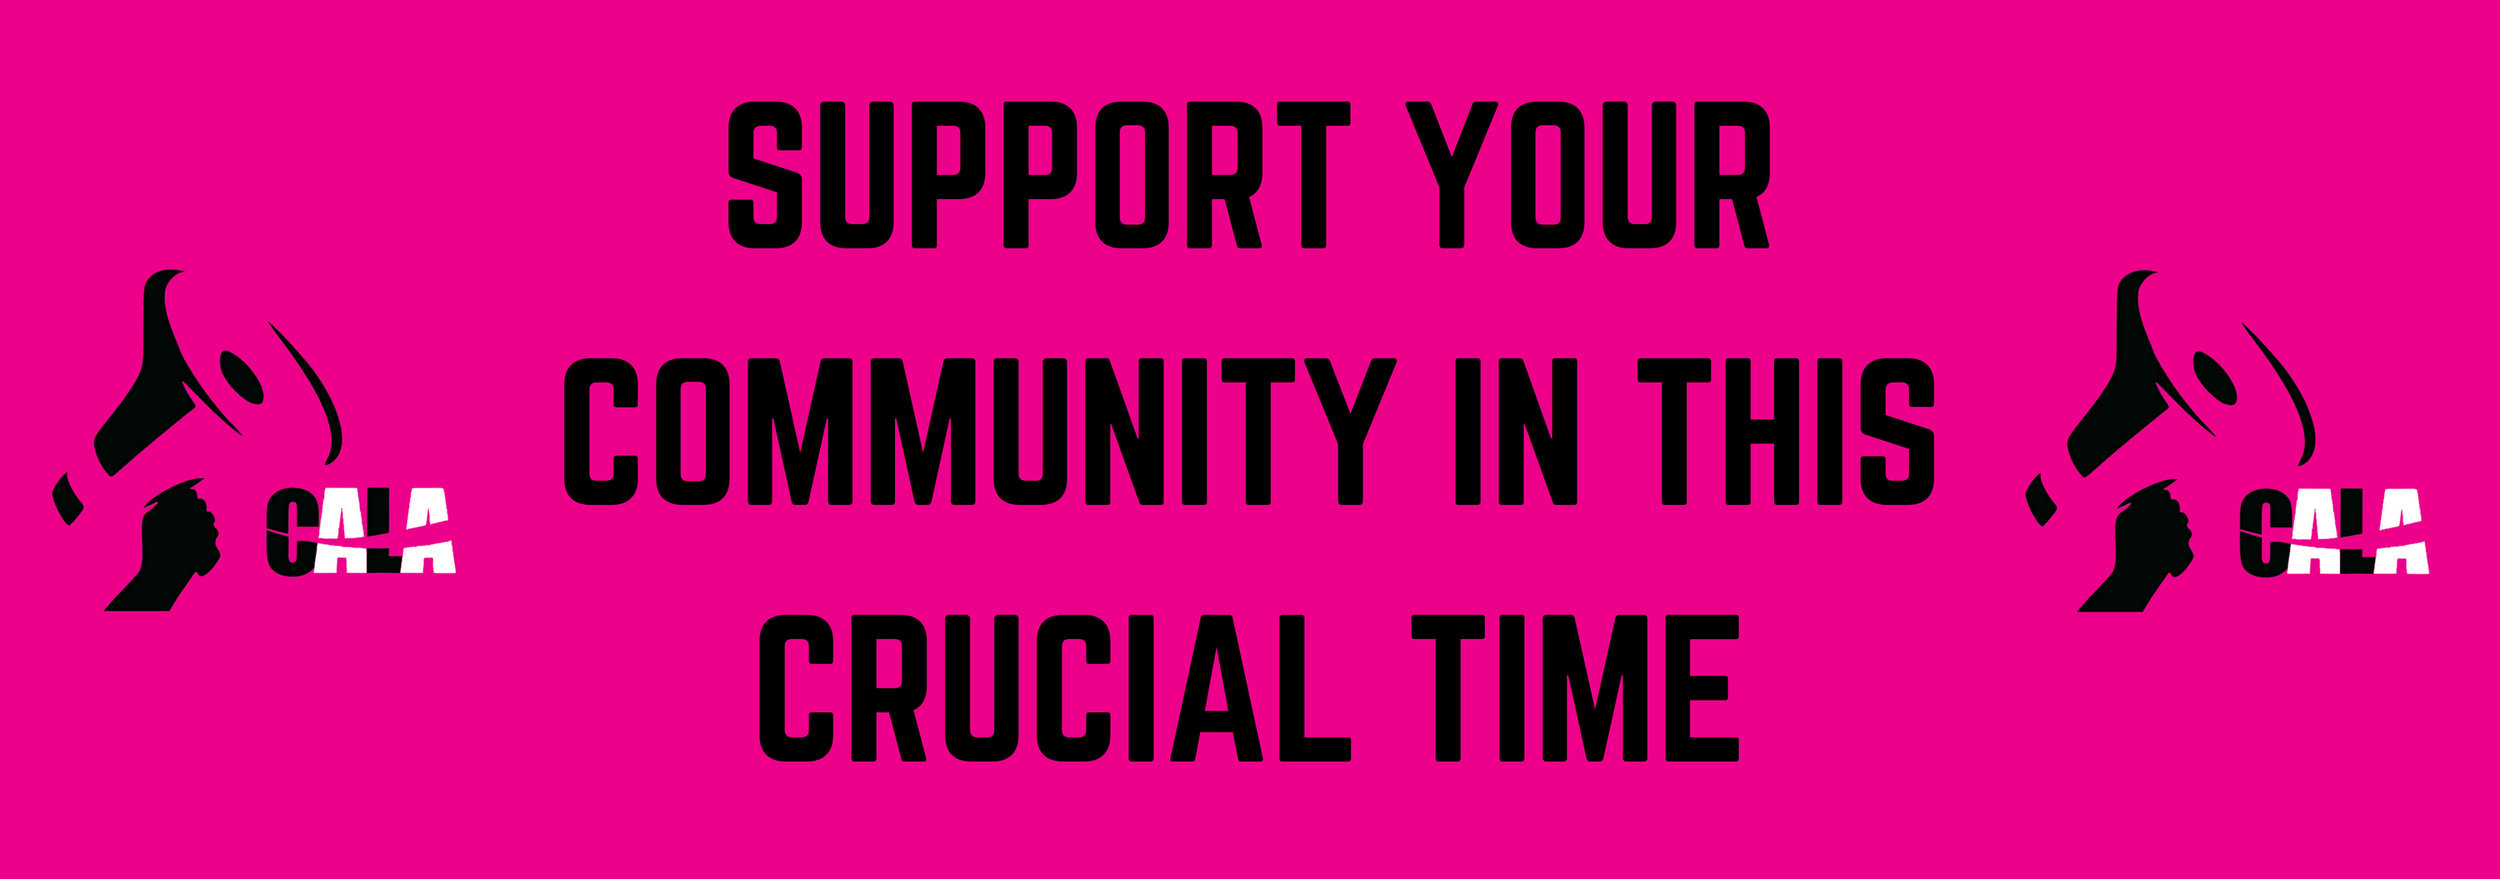 Donate to Support Immigrant Communities and Legal Activism